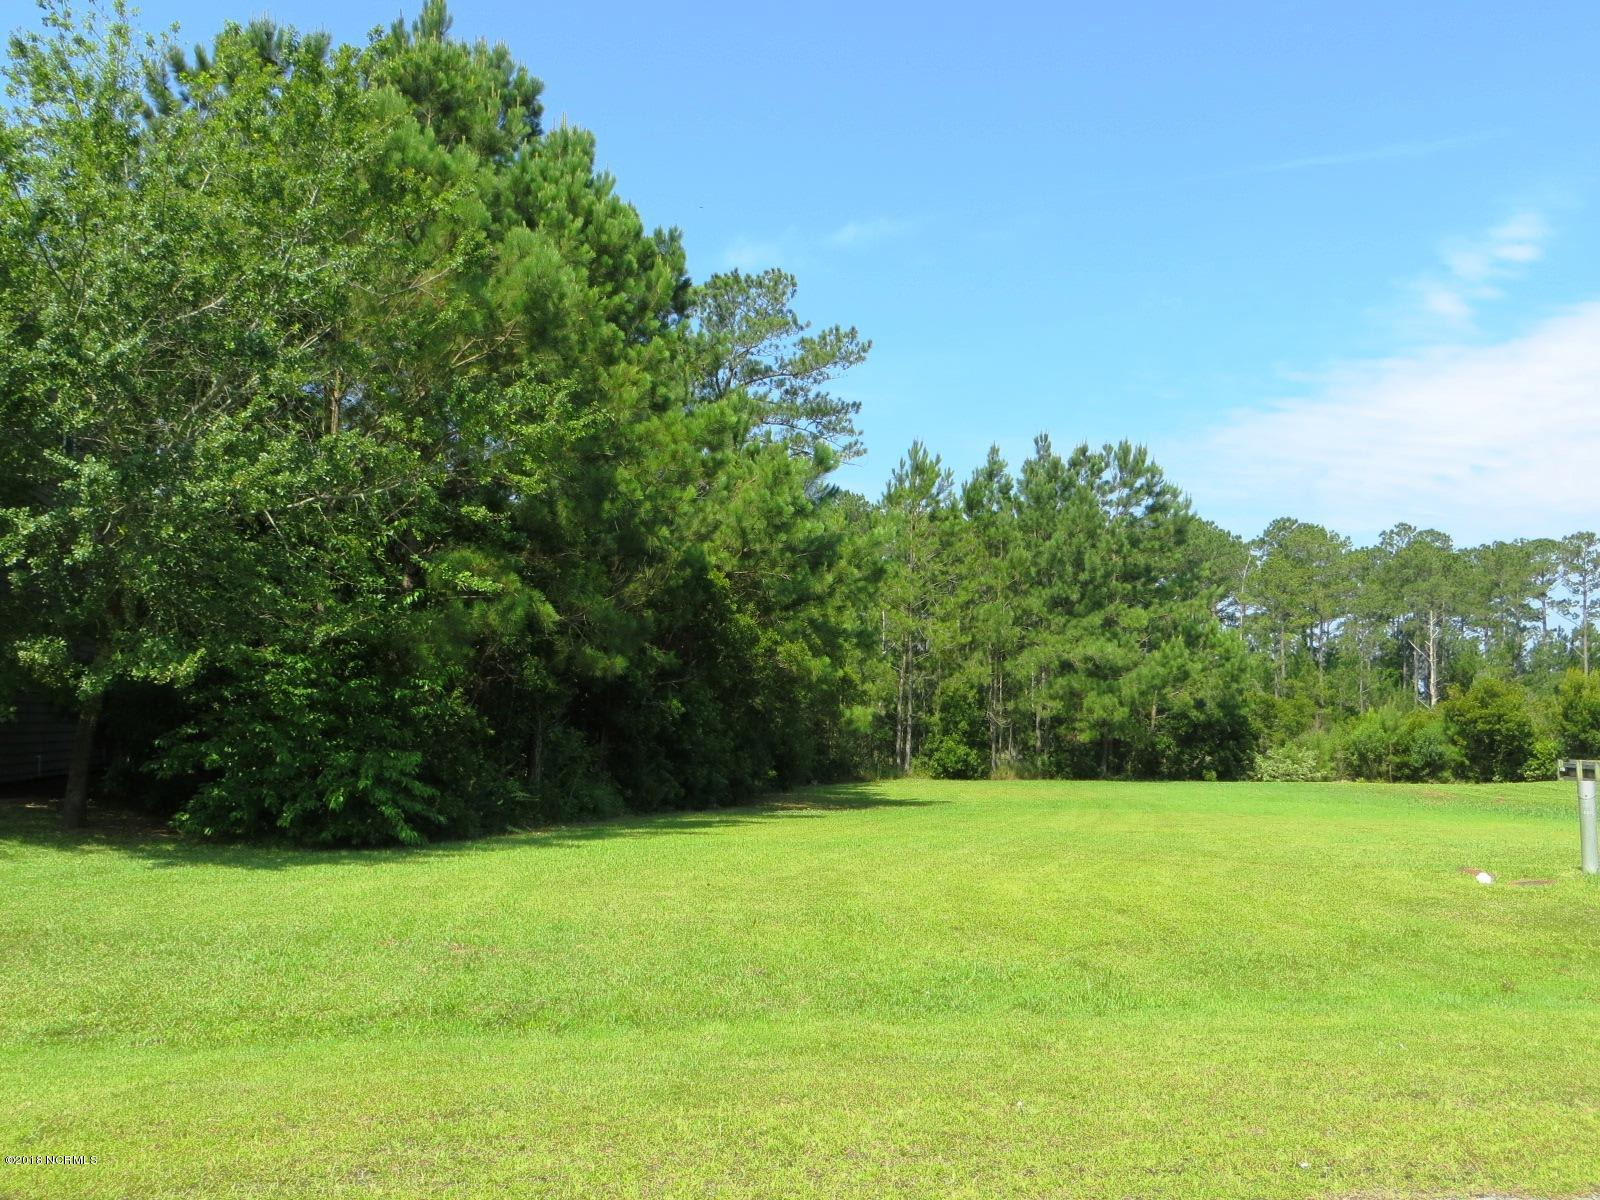 538 Shipmast Court, Beaufort, NC 28516 | MLS #100122446 - Emerald Isle  Realty